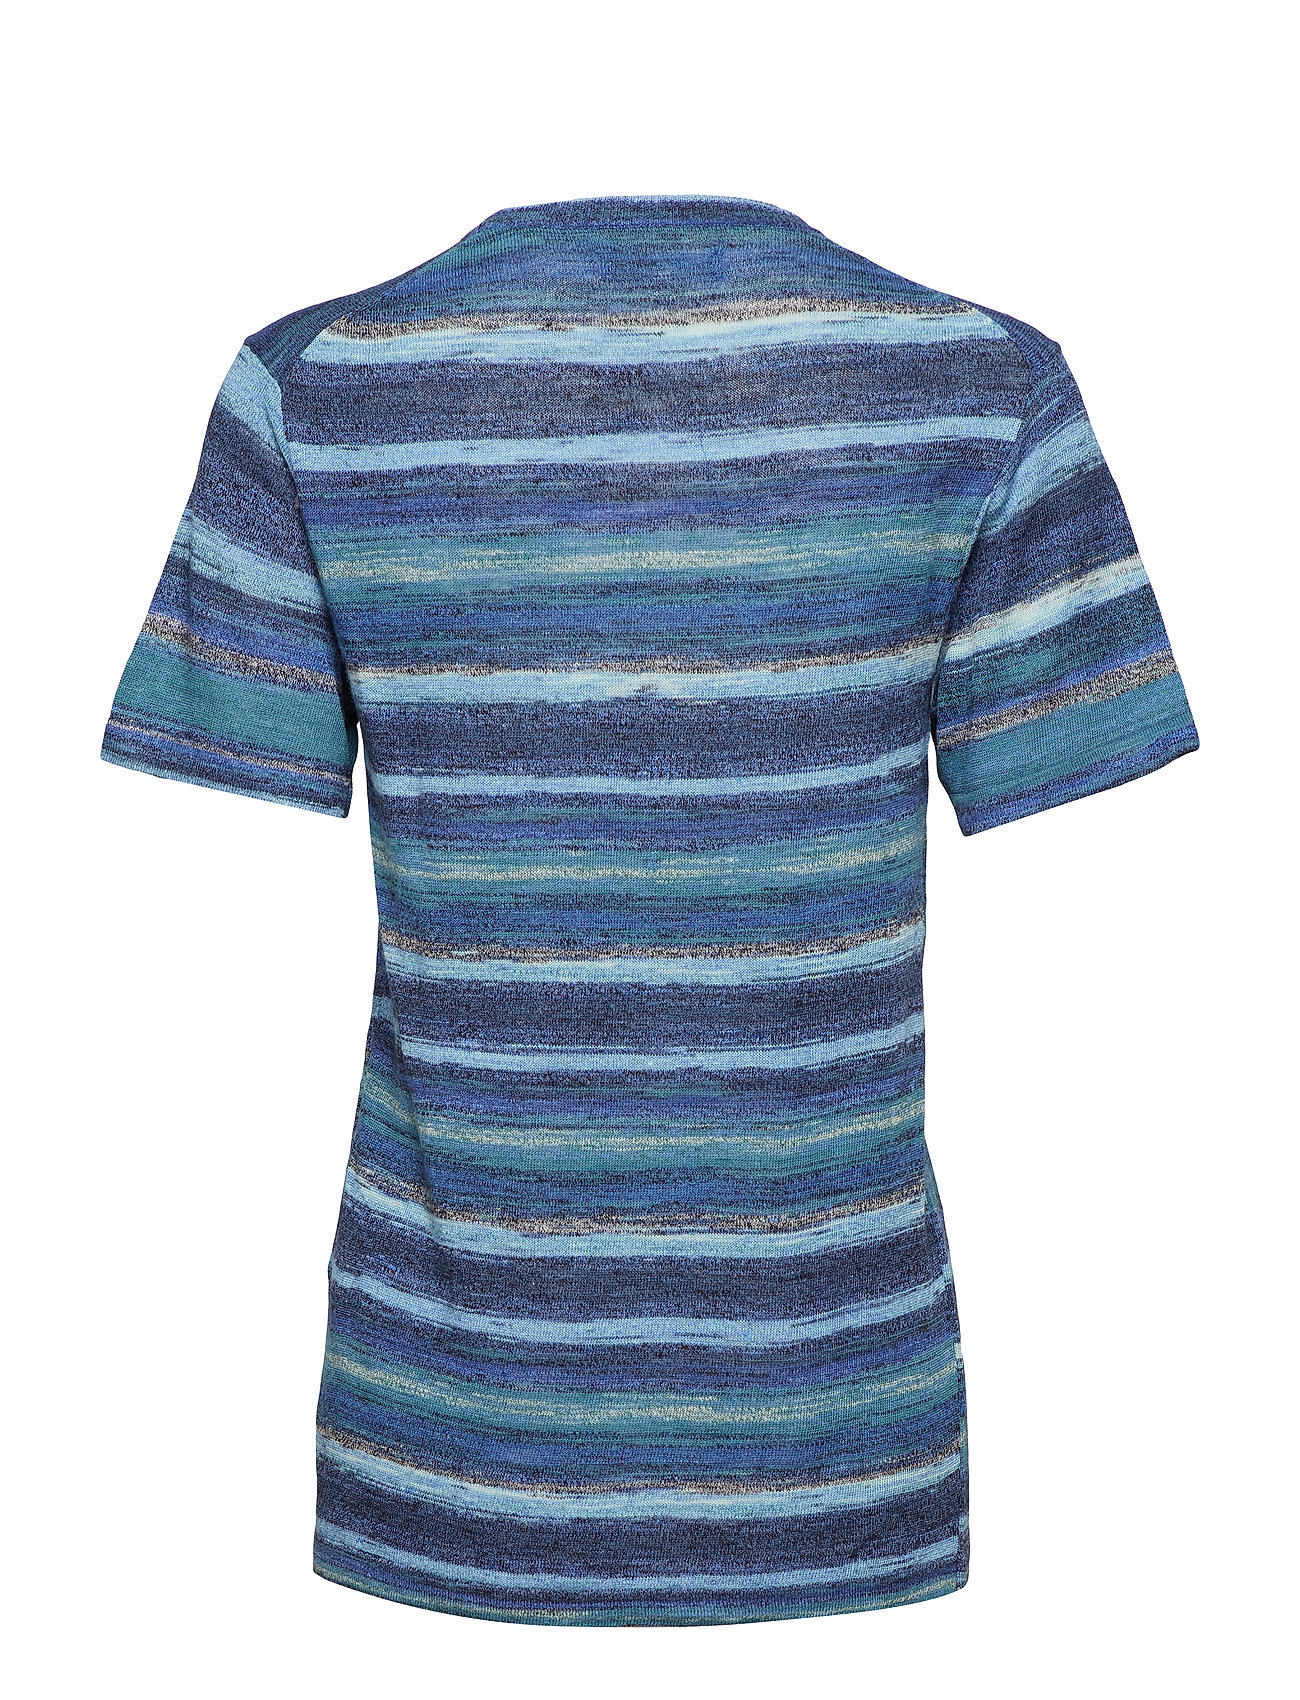 Levi's Made & Crafted    LMC BOY TEE LMC BLUE MIRAGE BL  - T-Shirts & Tops    BLUES